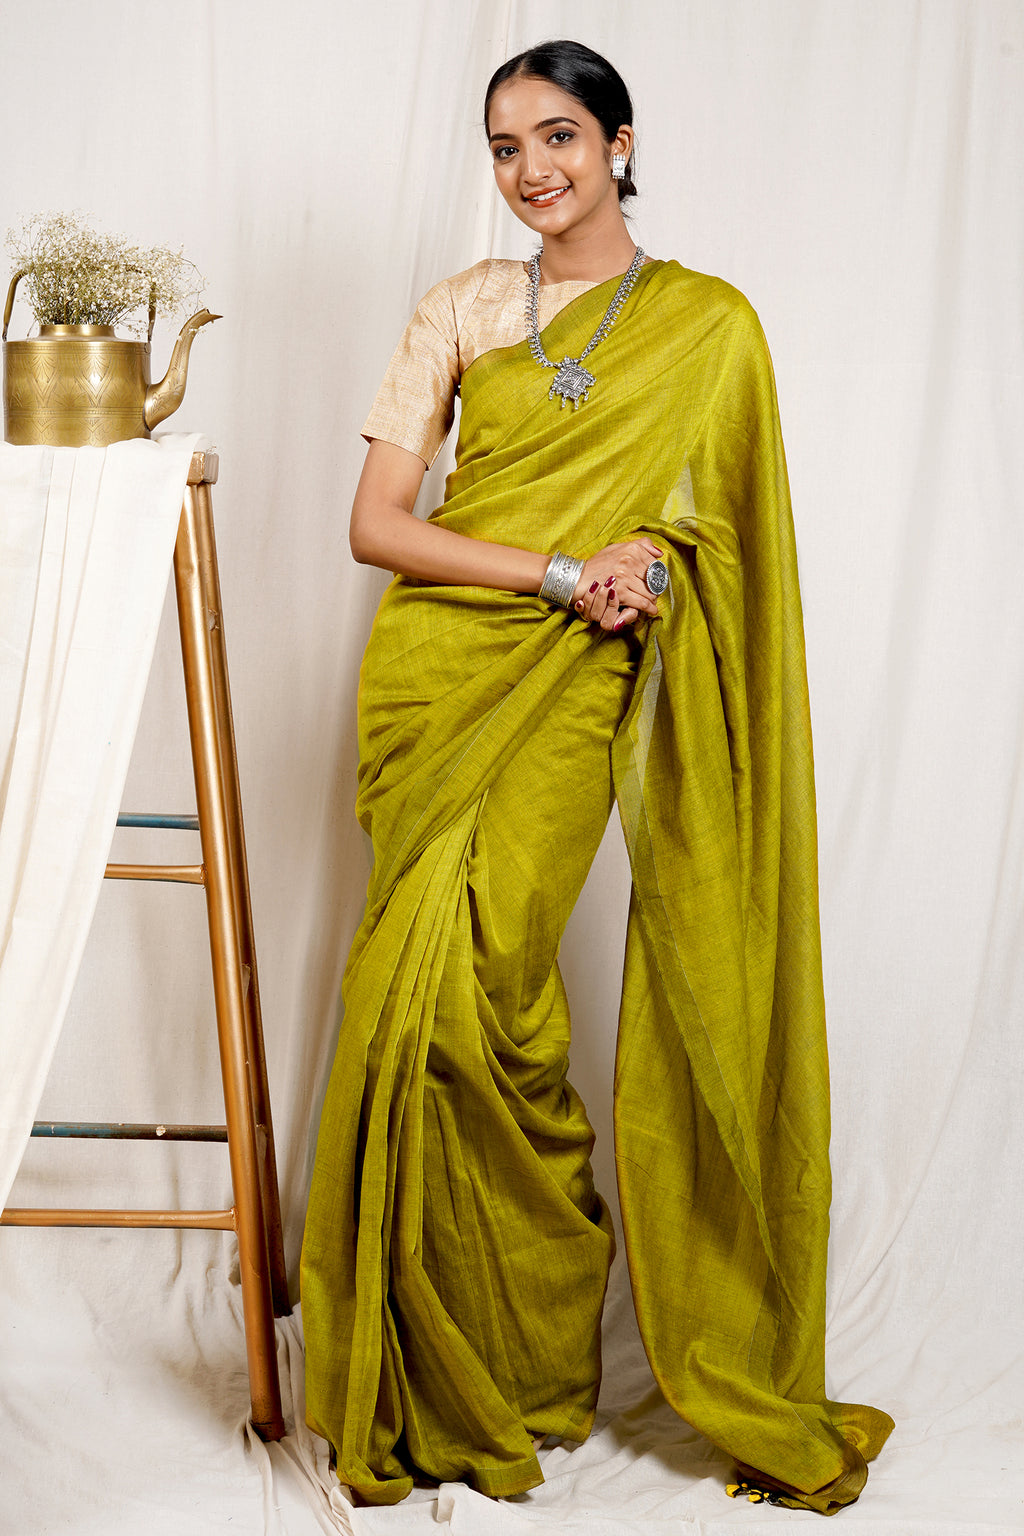 Teejh Shamrock Green Mulmul Cotton Saree